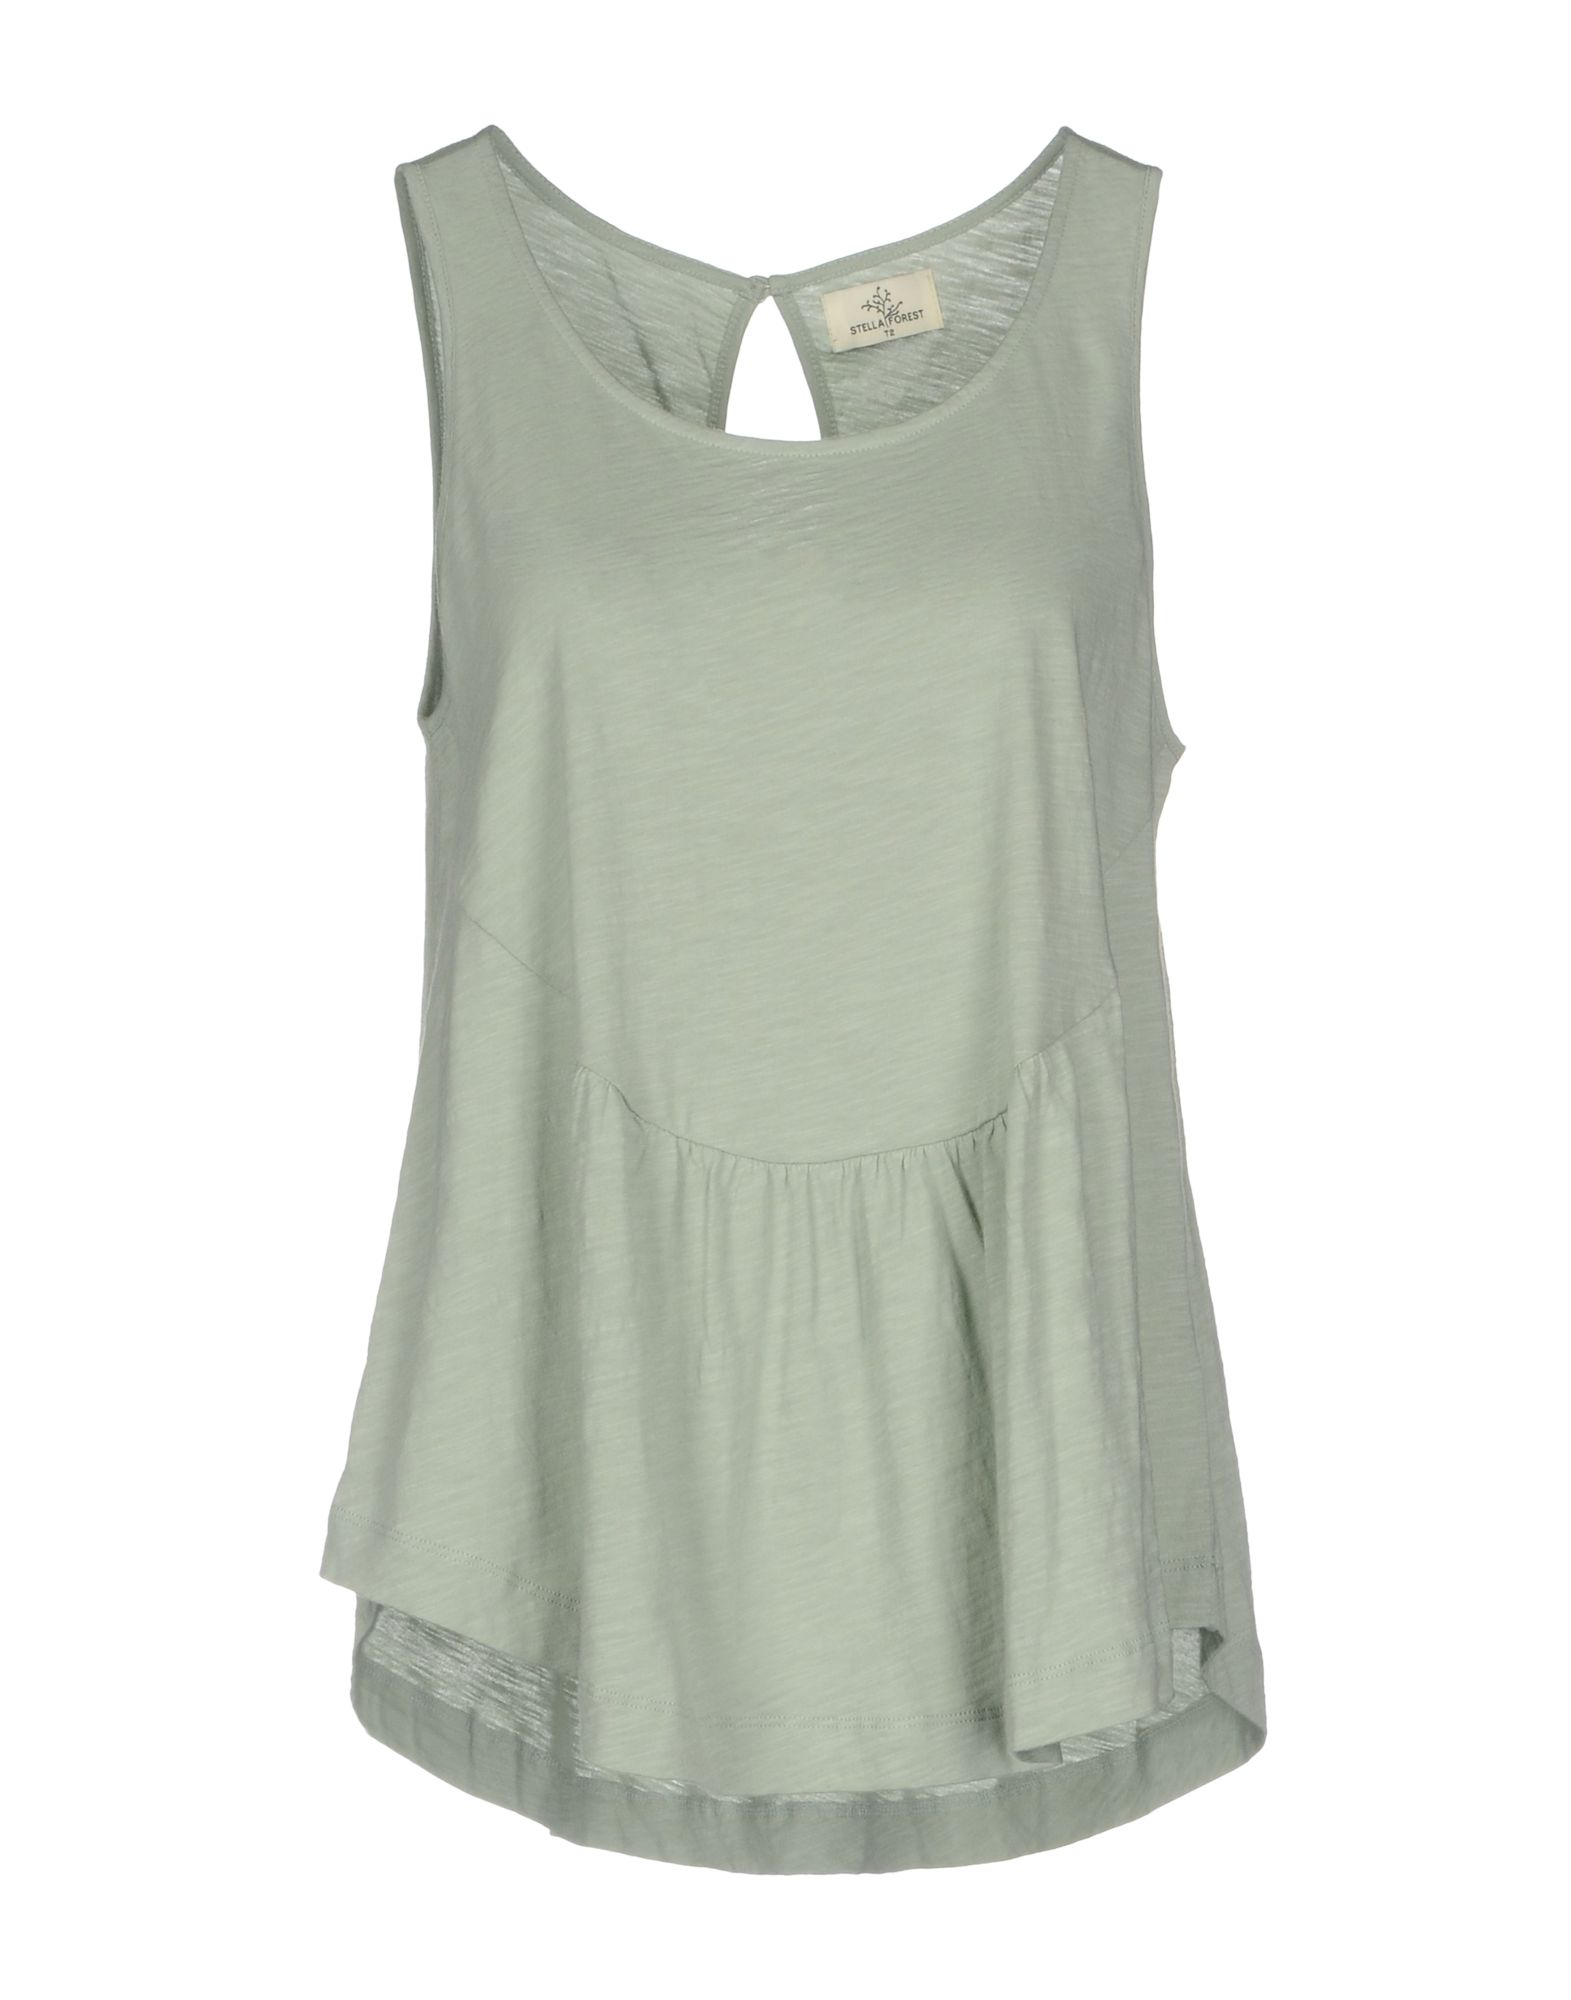 STELLA FOREST Tank Top in Light Green